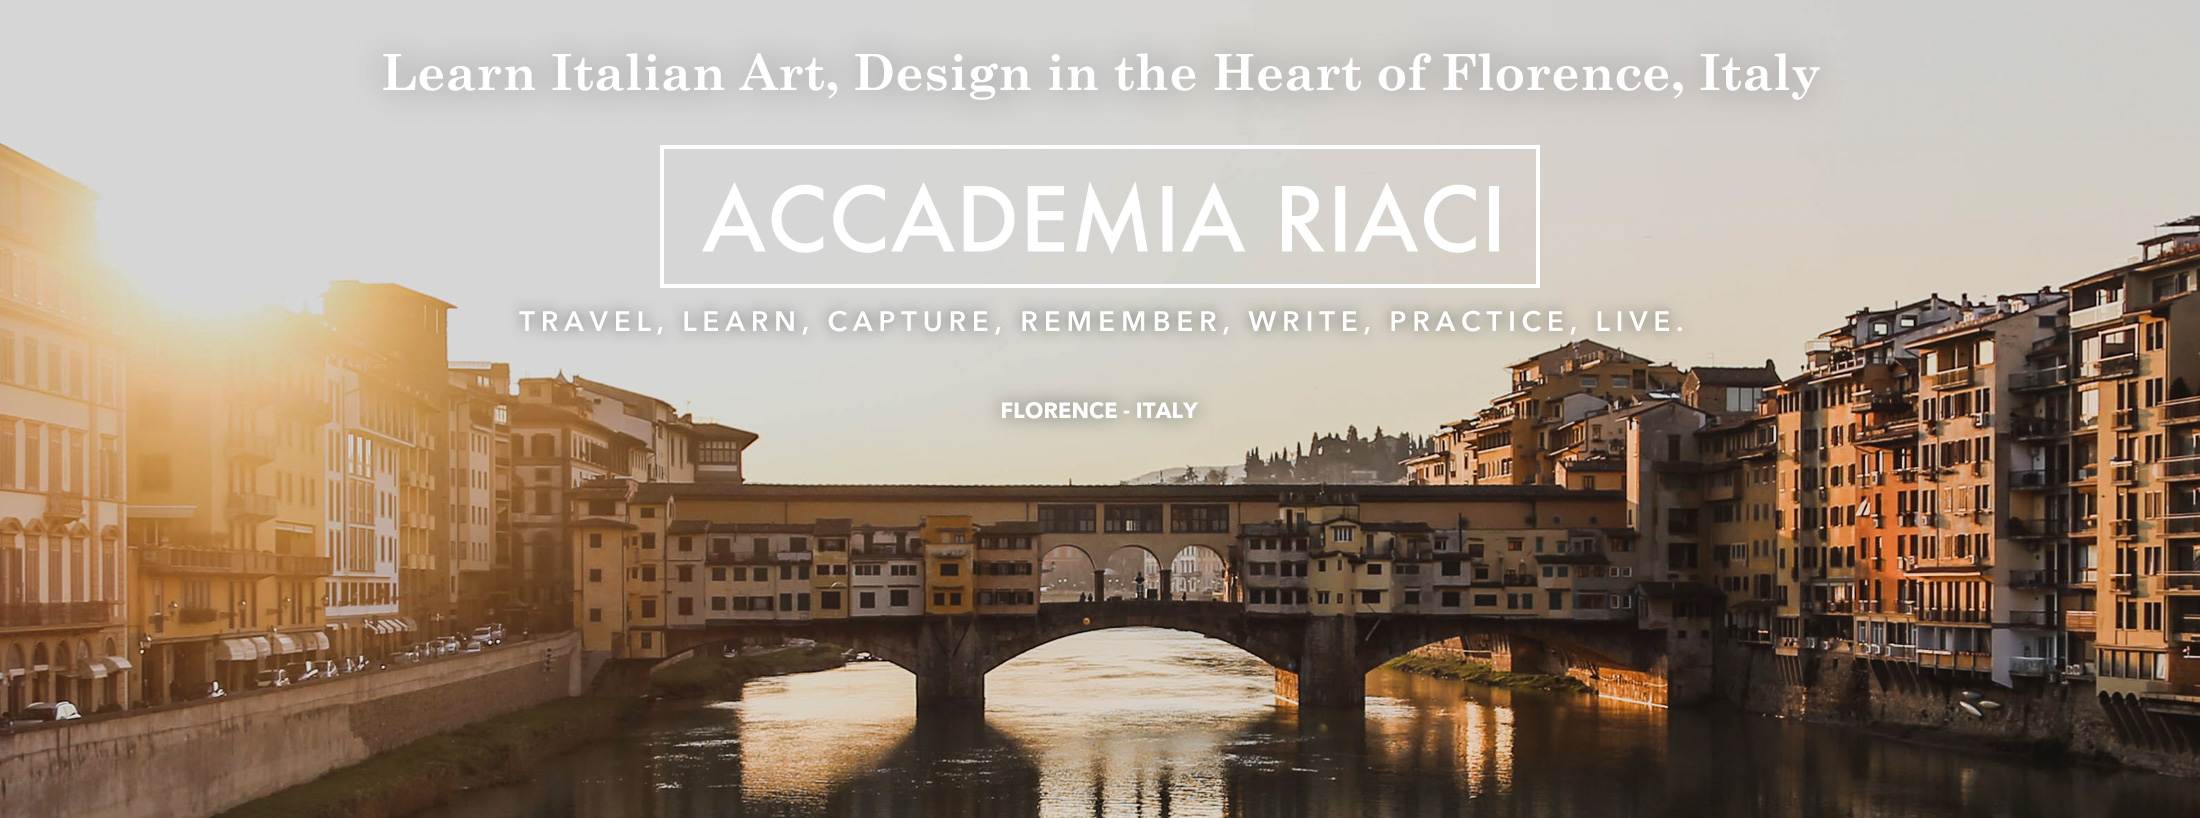 Accademia Riaci - Learn Italian Art, Design in the Heart of Florence, Italy